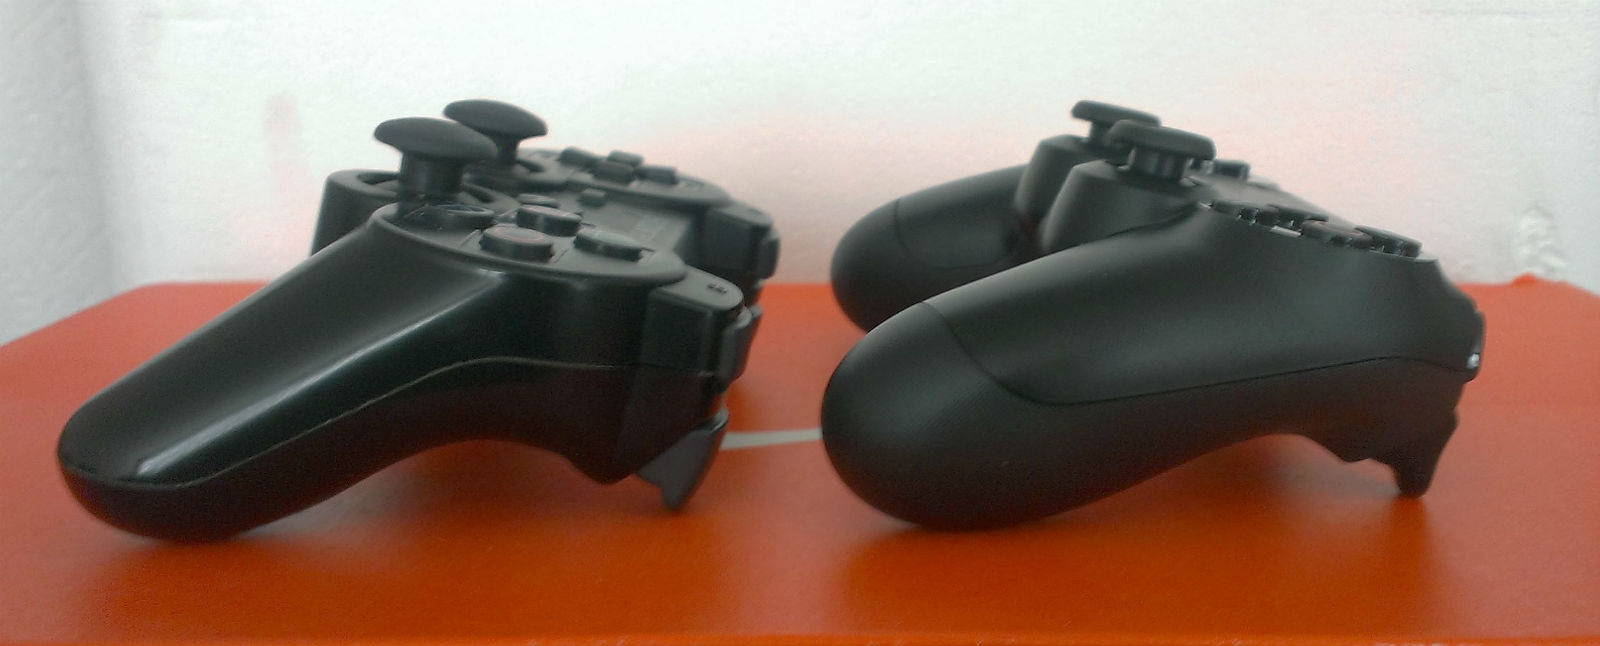 how to charge dualshock 3 on pc